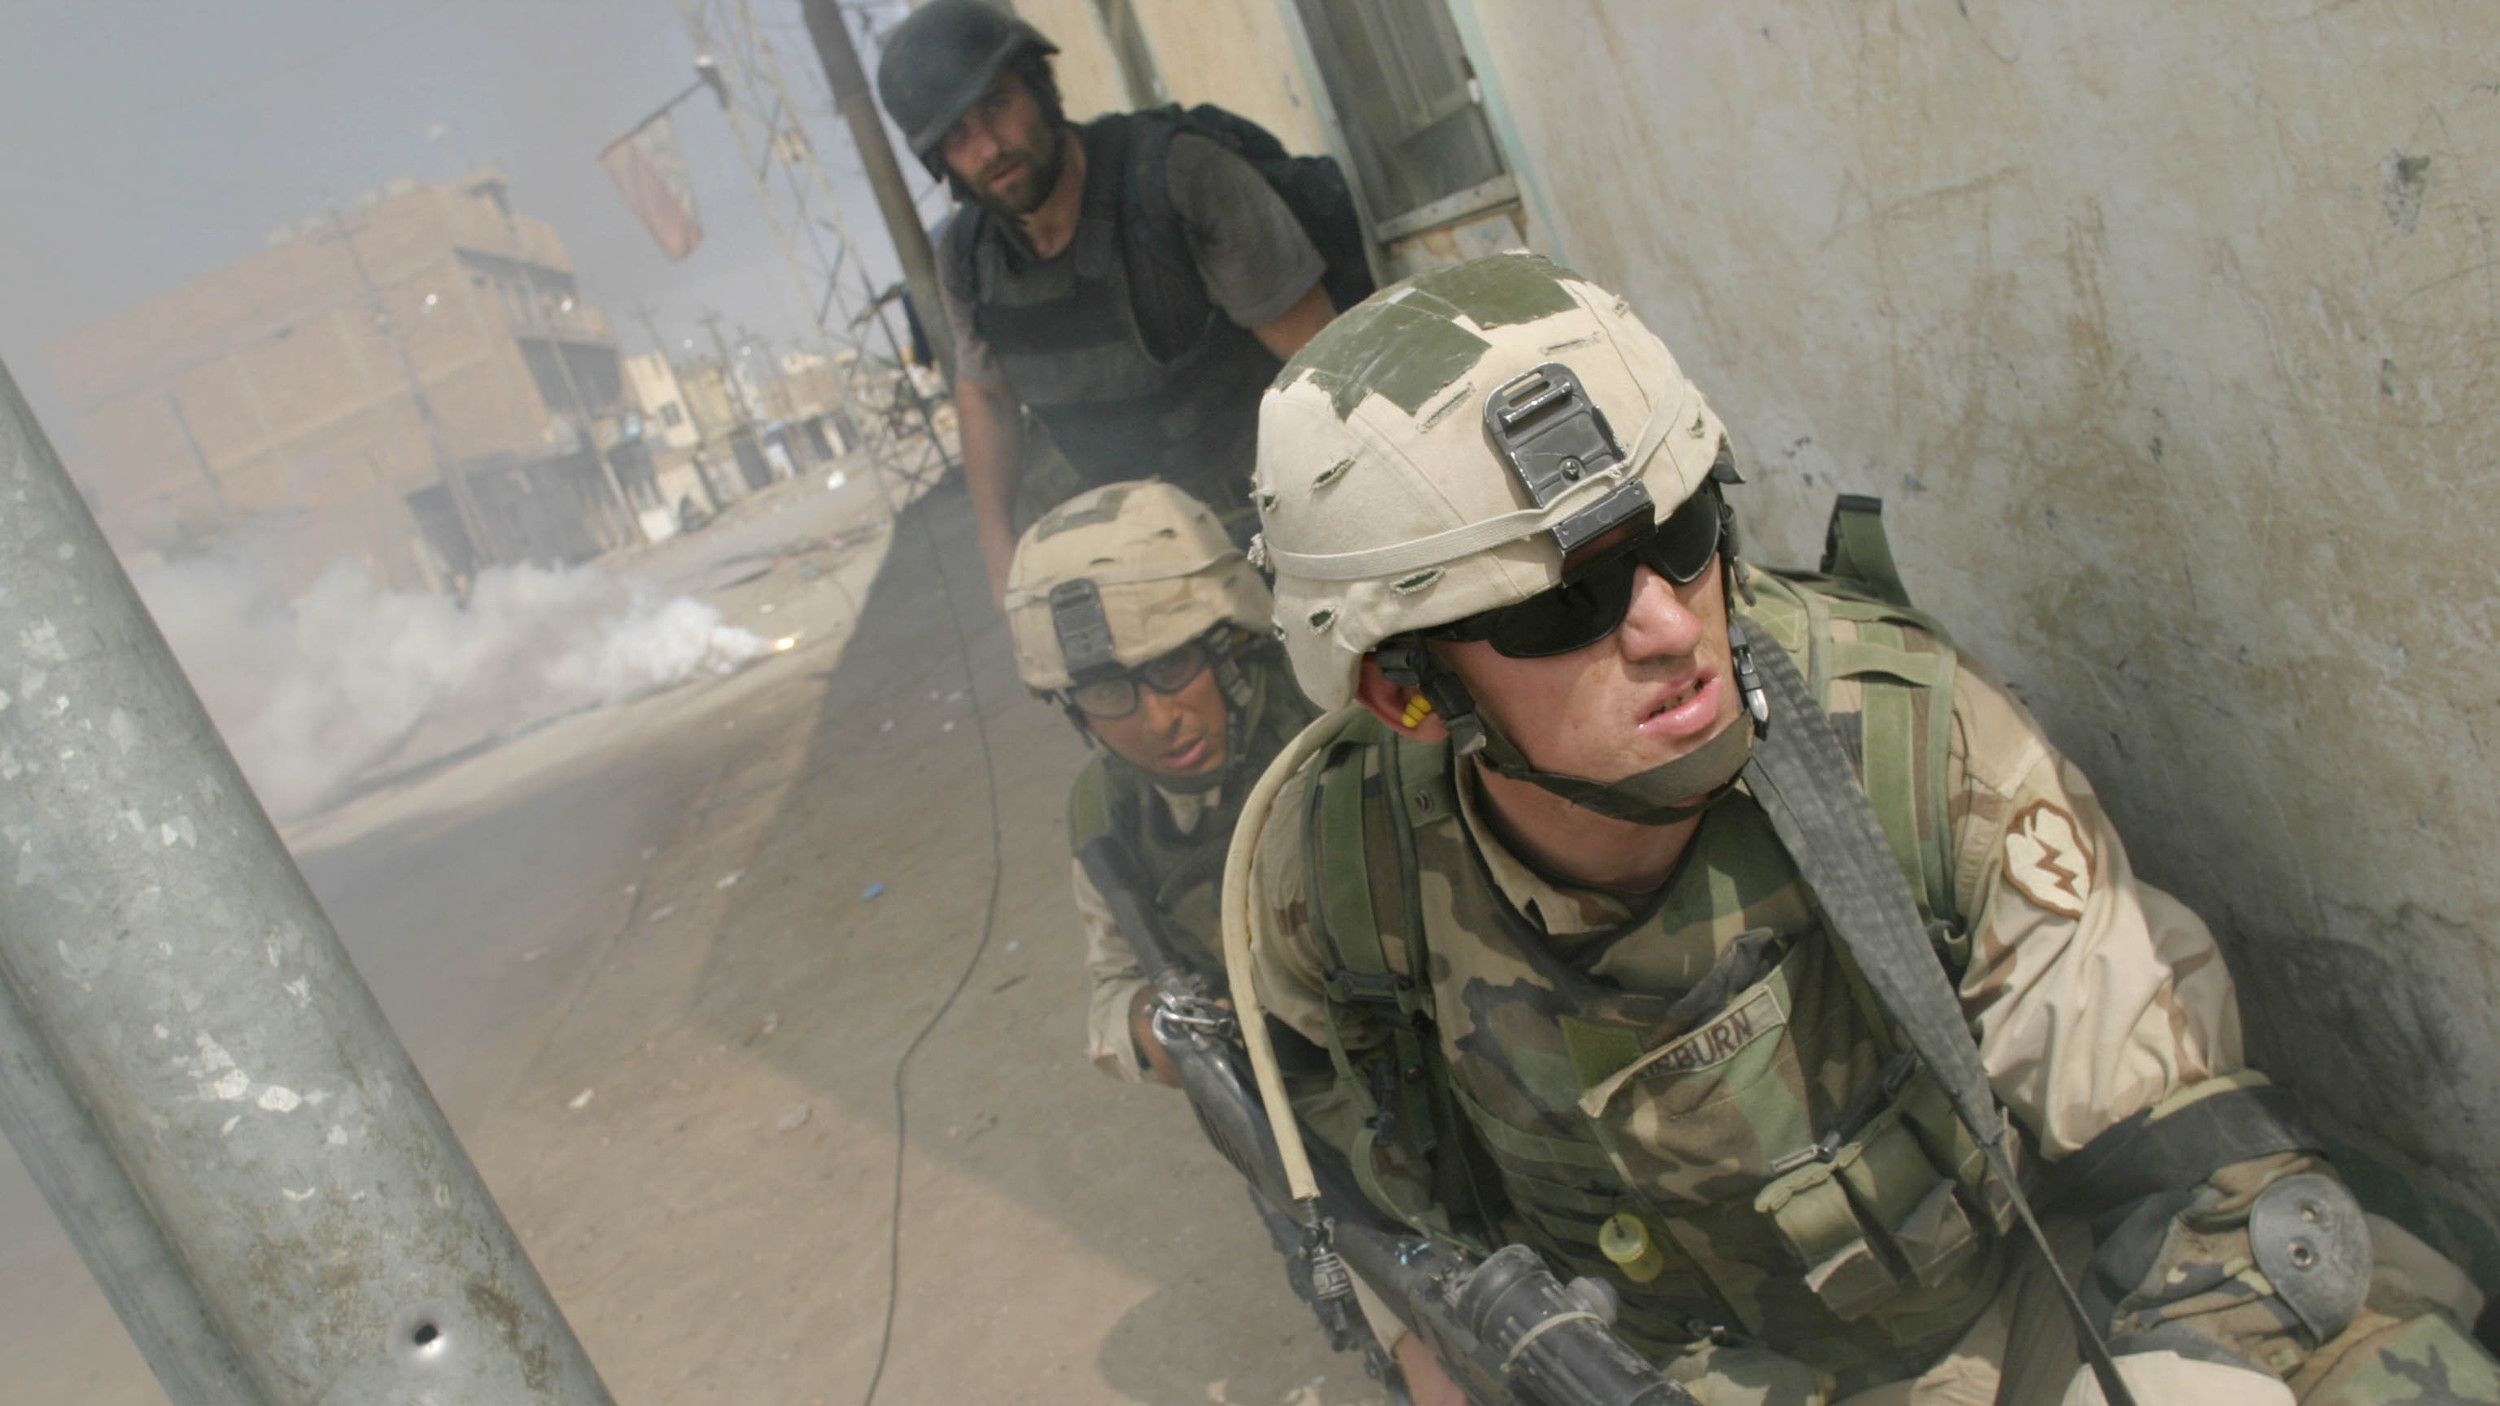 Only The Dead 00 - Credit Max Becherer _ Polaris_Michael Ware with U.S. Troops.jpg